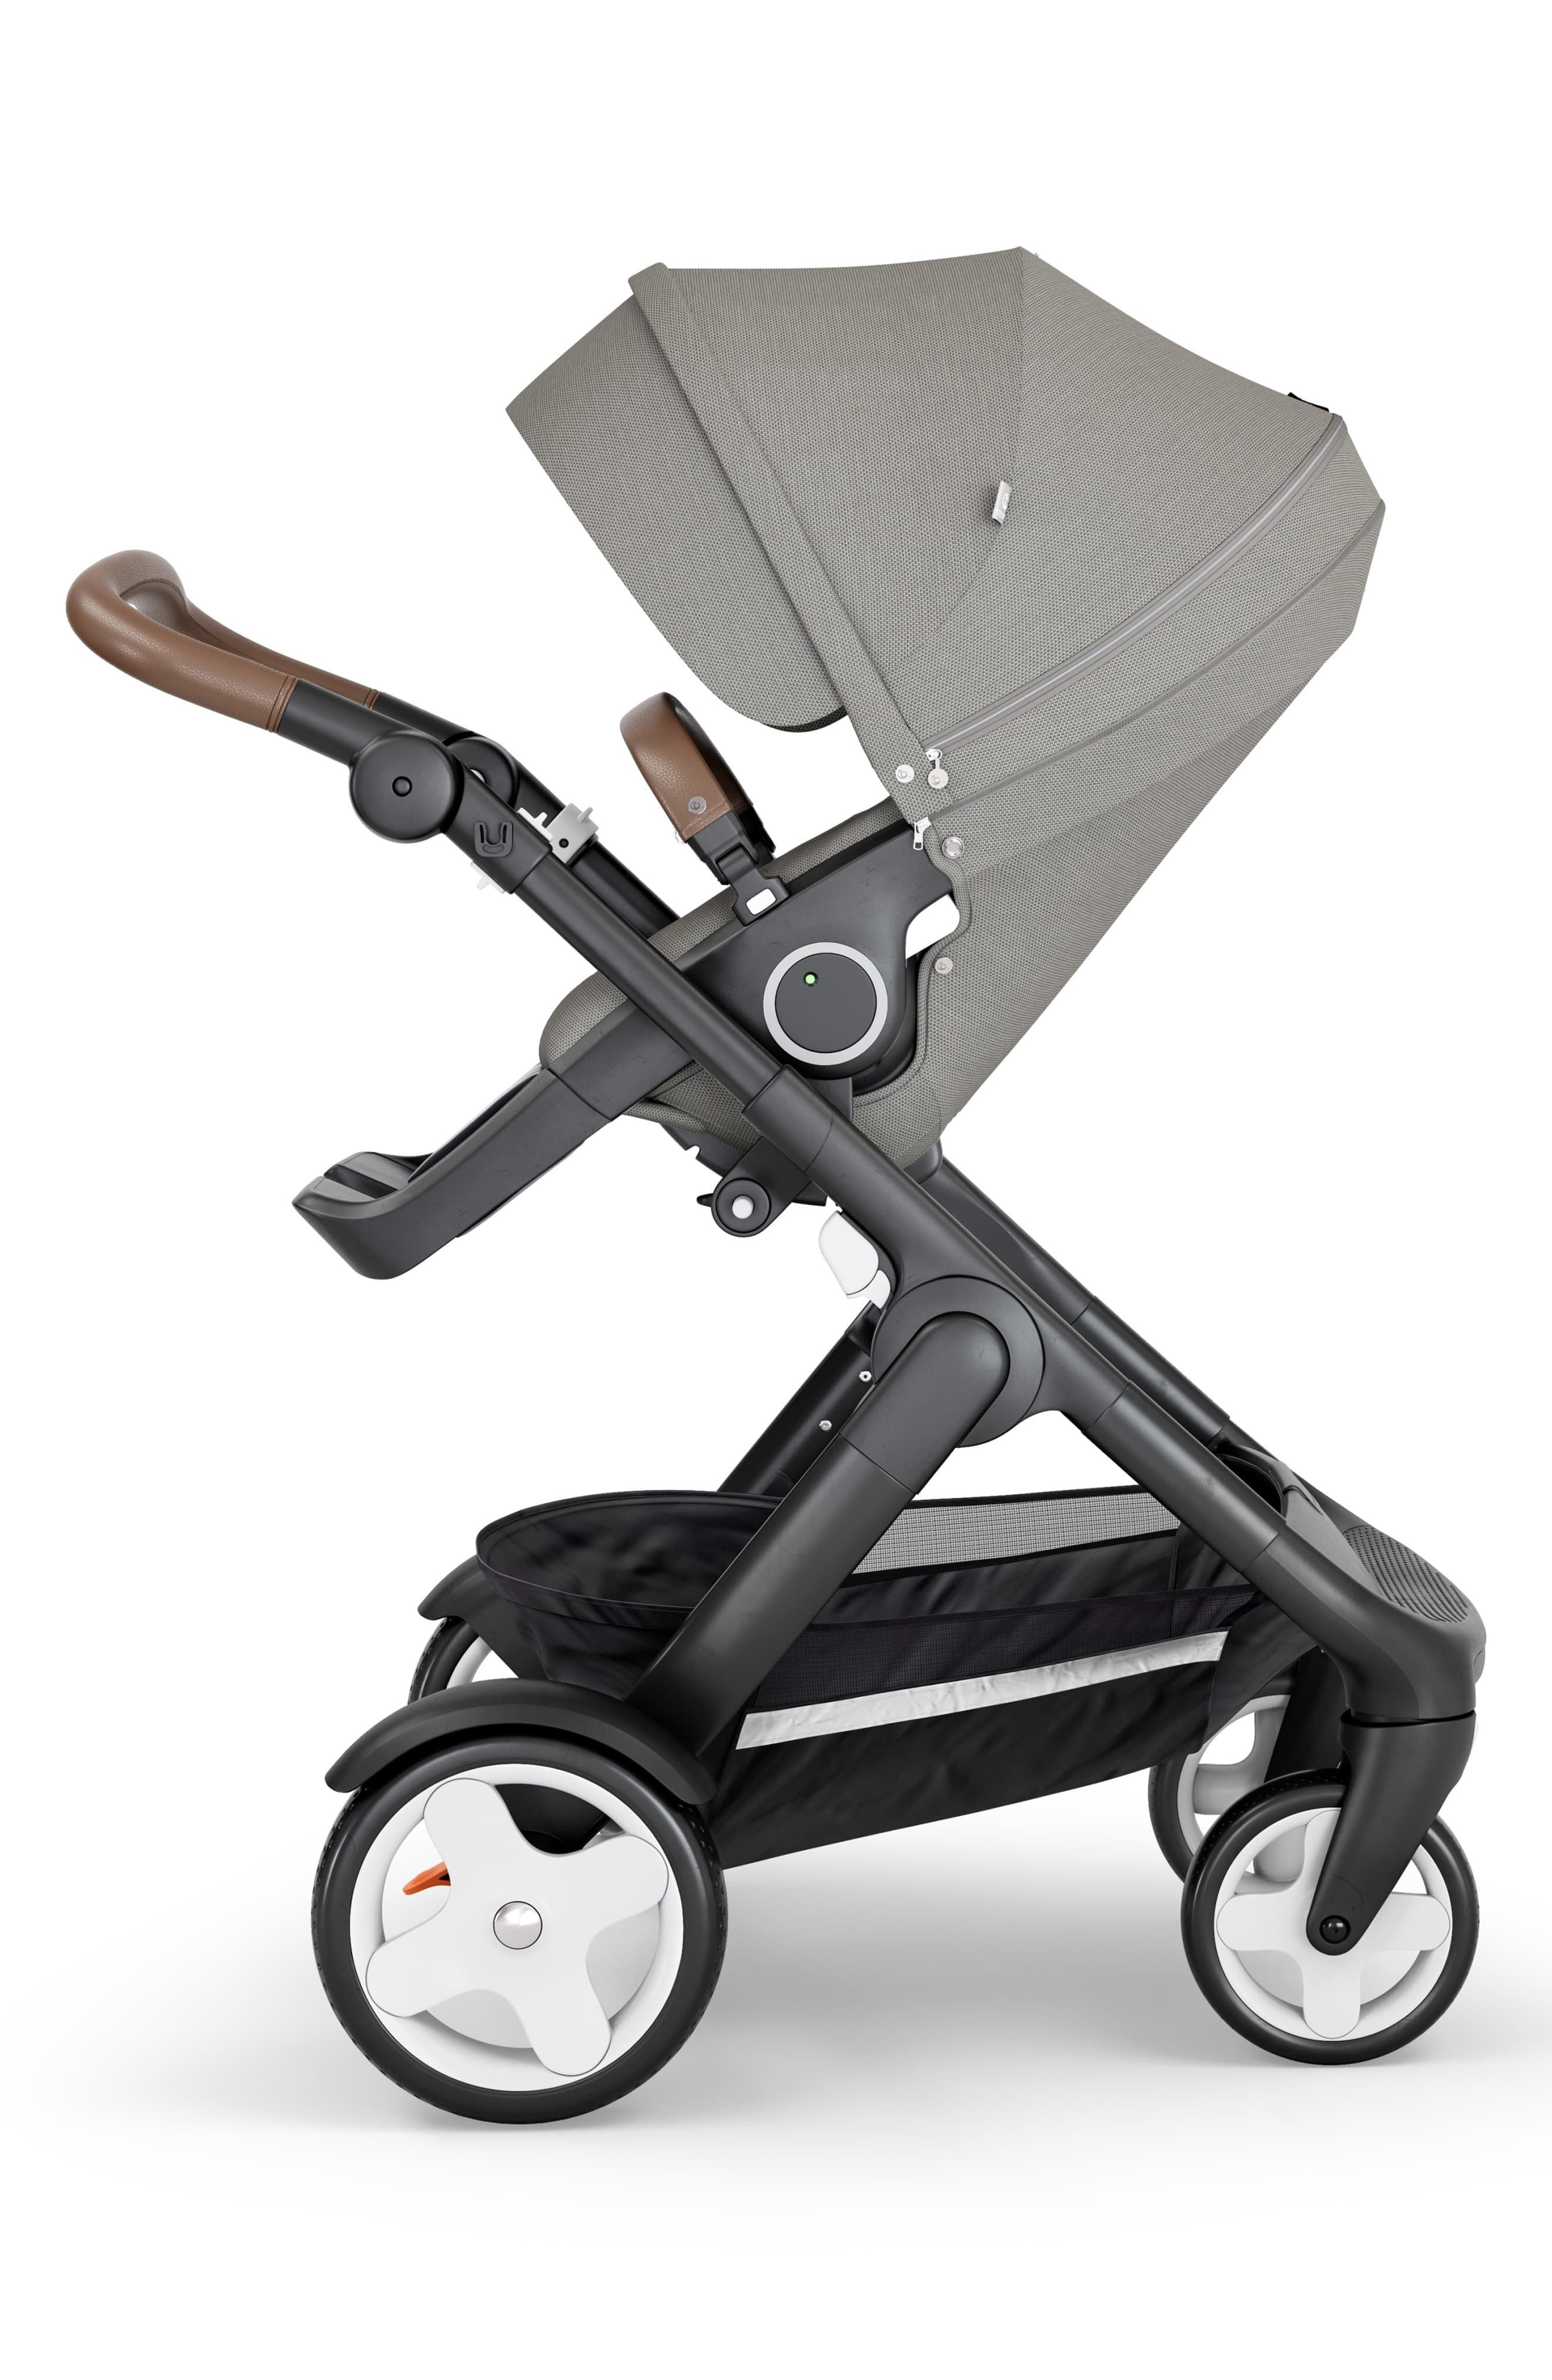 Black soft Fabric Handle Cover Chassis To fit STOKKE Baby Child strollers NEW